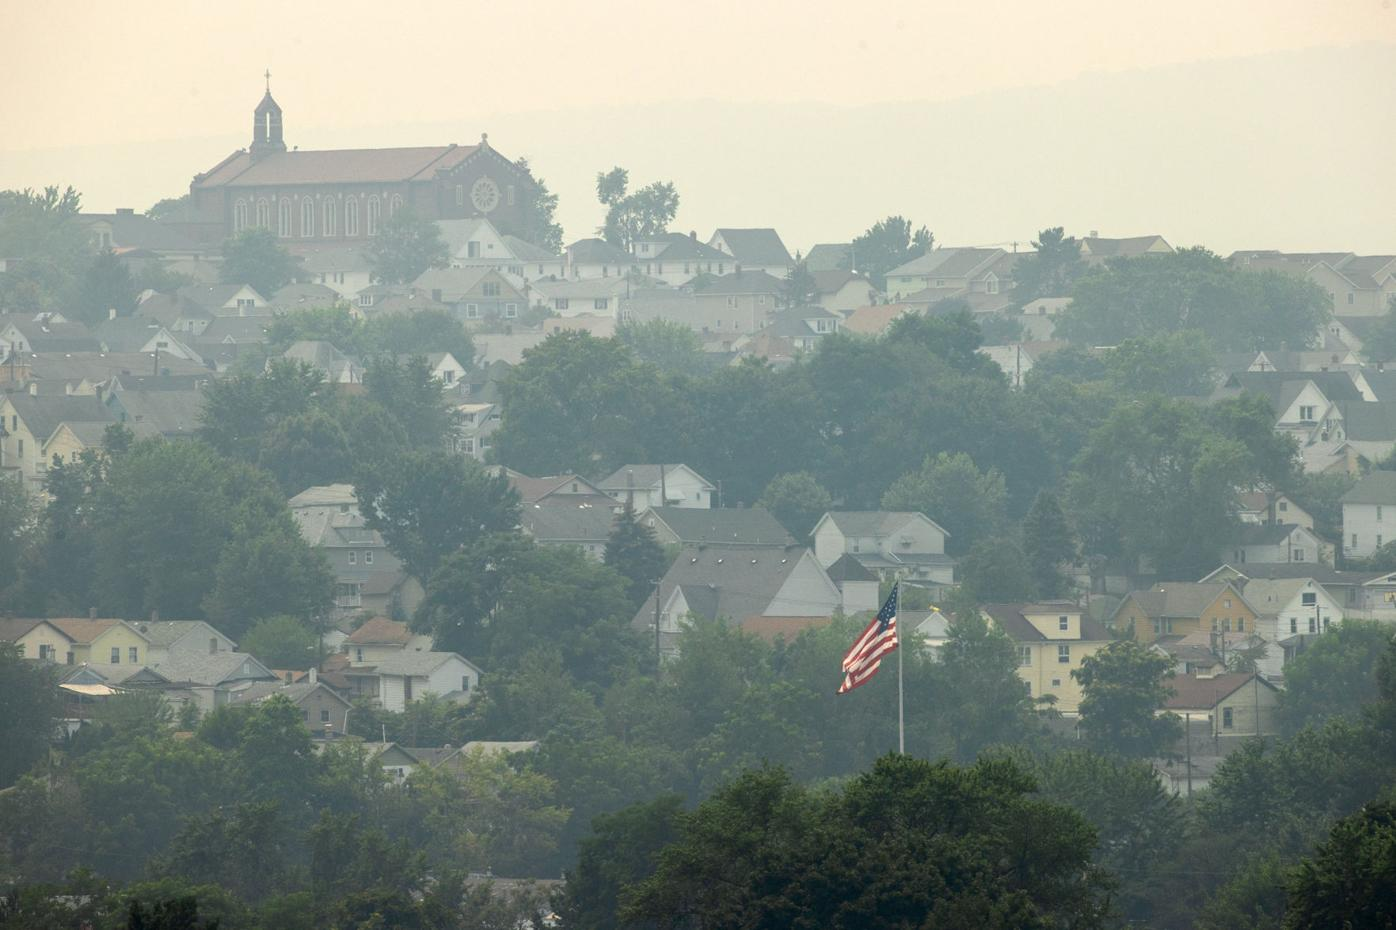 Smoky haze from western fires blankets Northeast PA